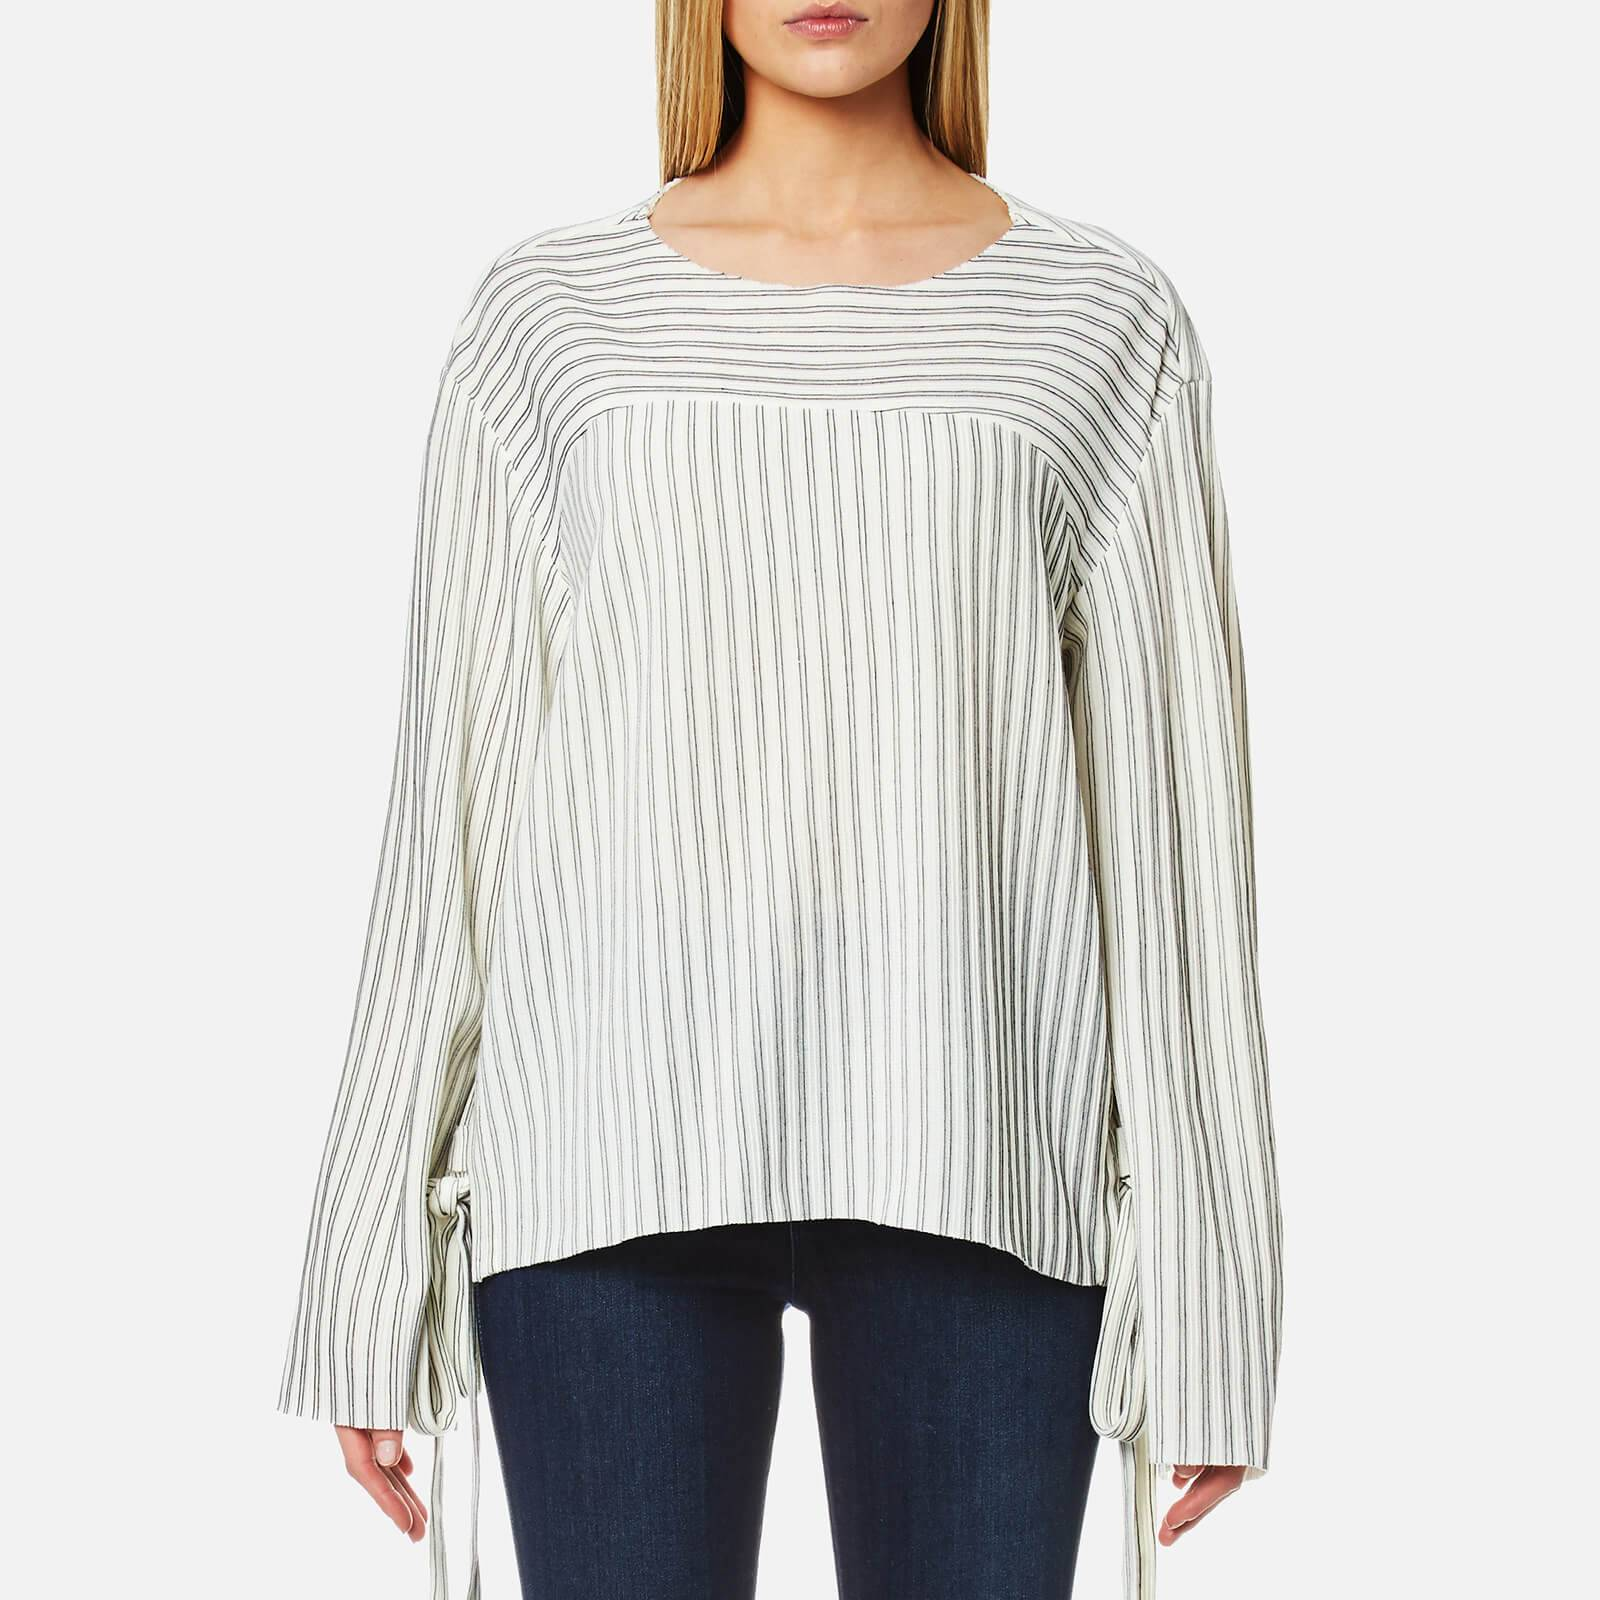 House of Sunny Women's Lace Up Stripe Top - Stripp - UK 12 - White